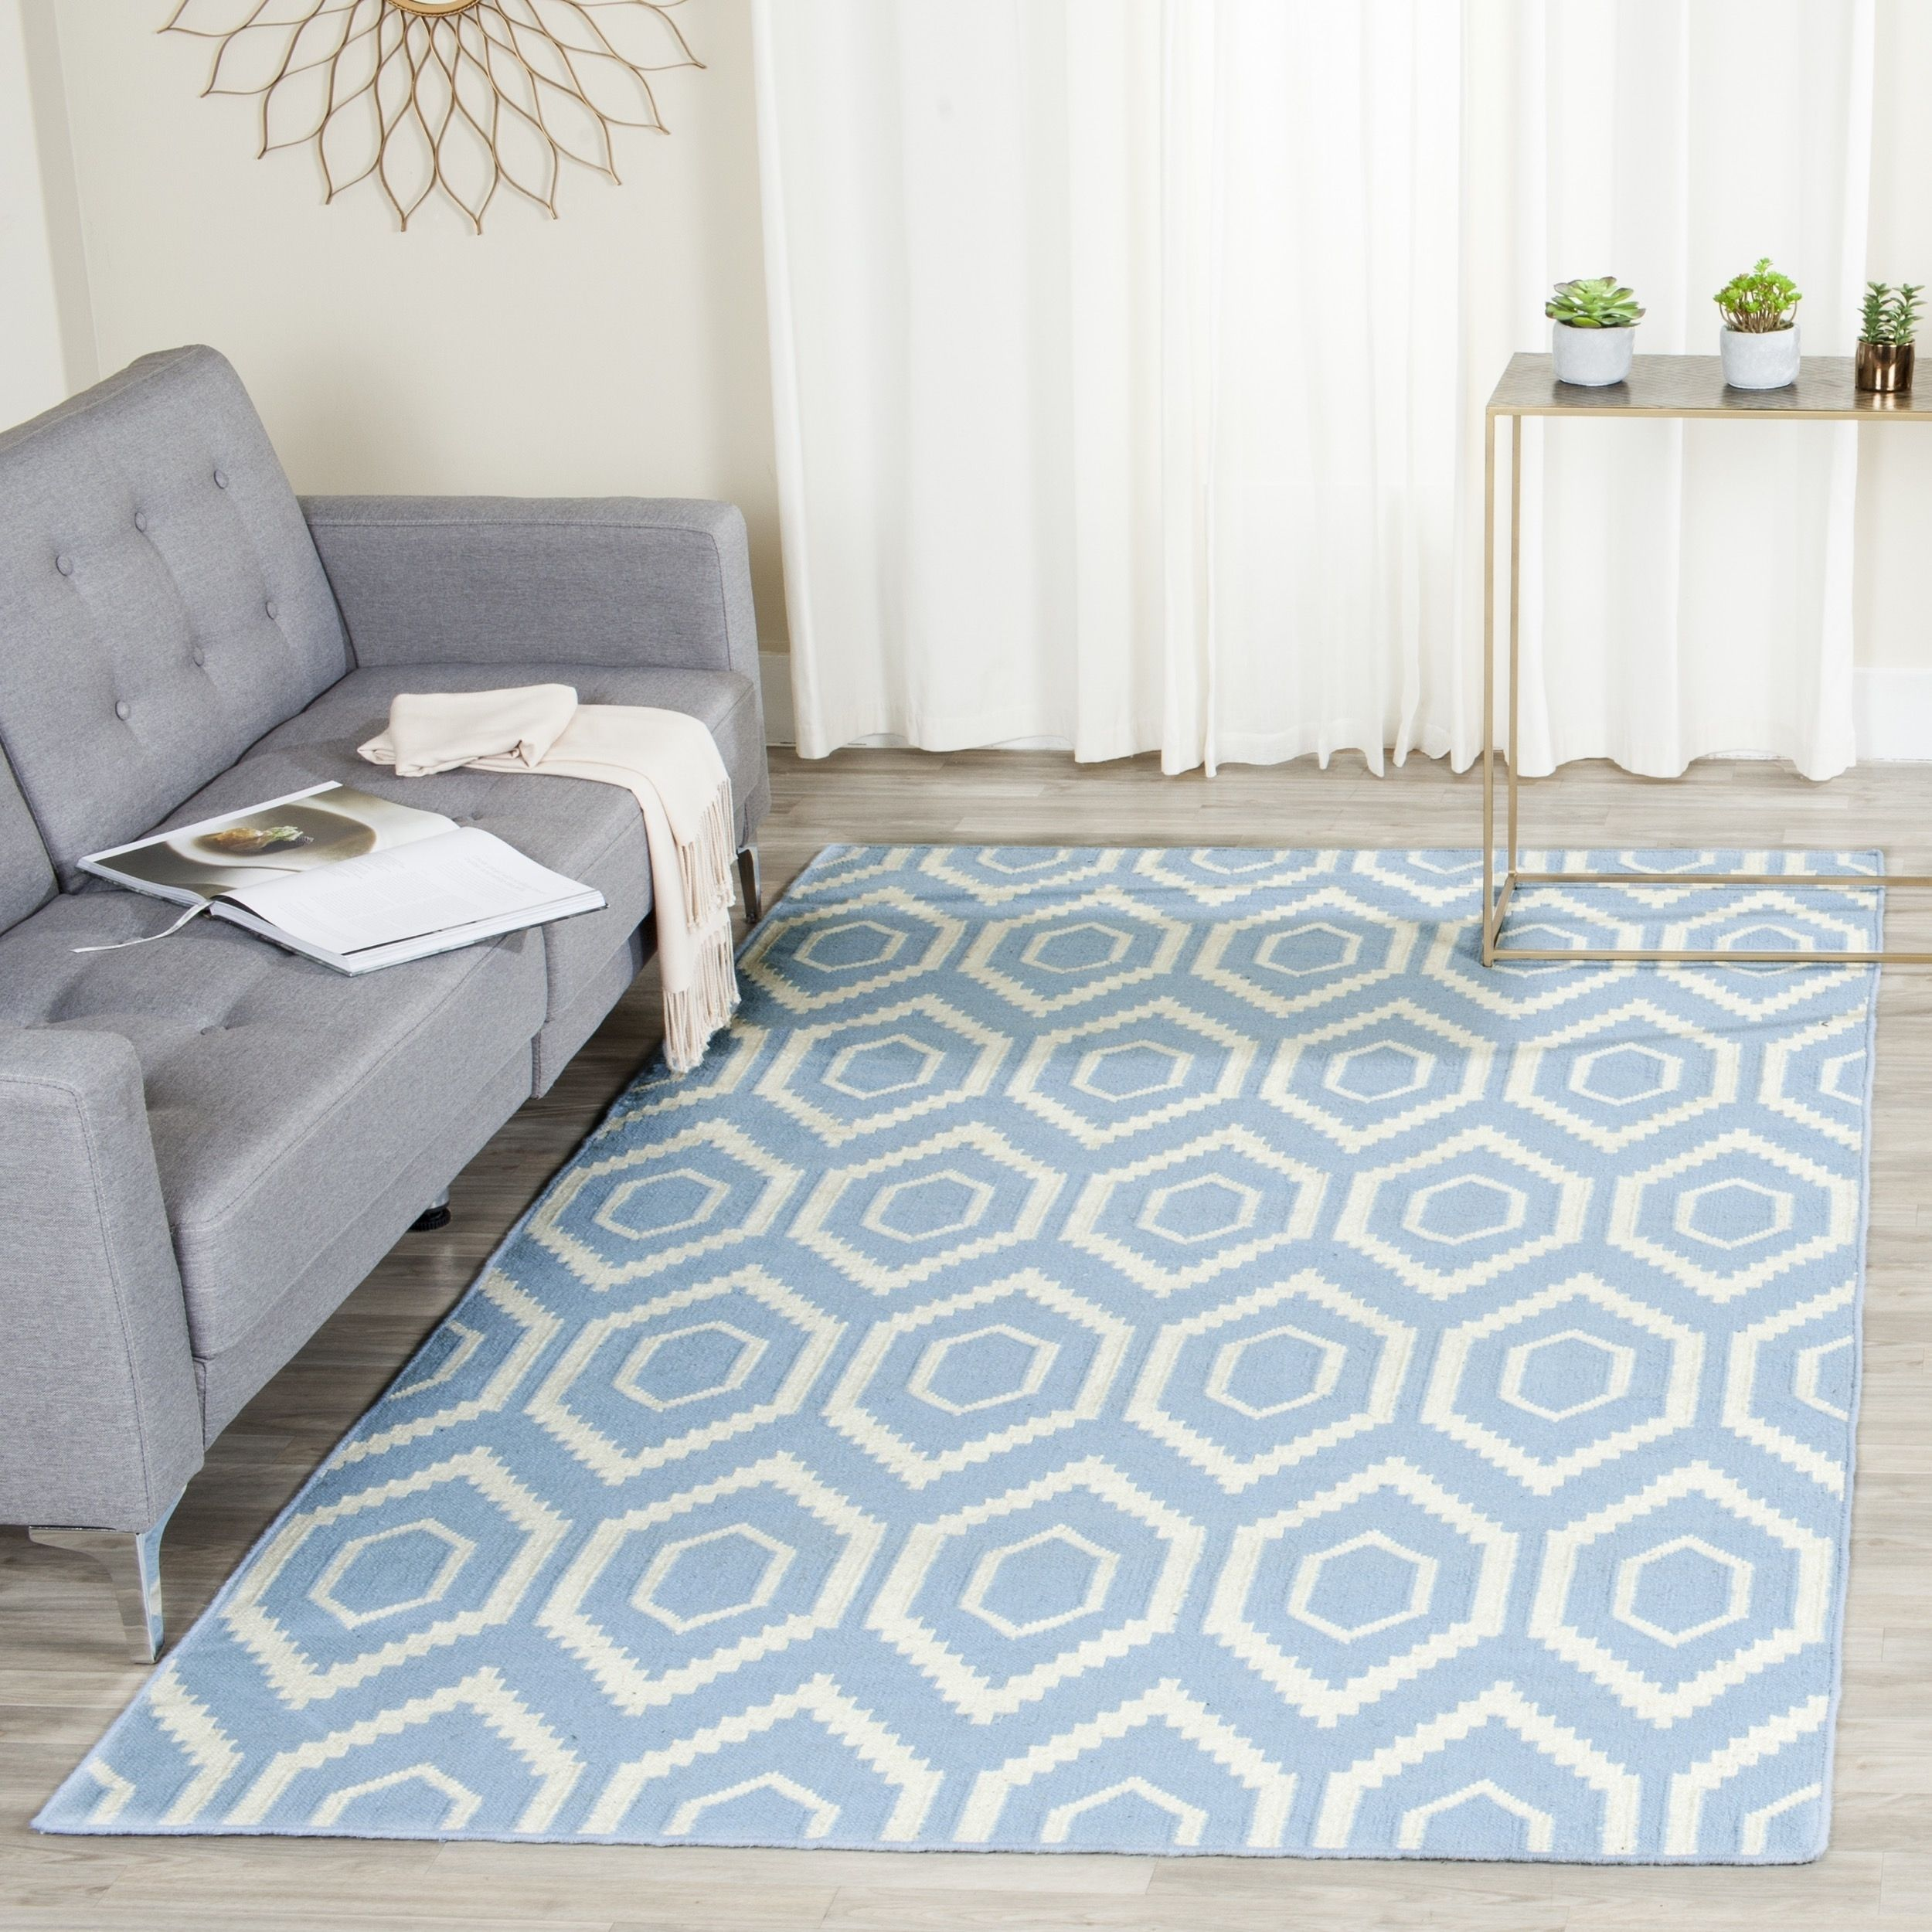 Safavieh Hand Woven Moroccan Reversible Dhurrie Blue Ivory Wool Rug 8 X